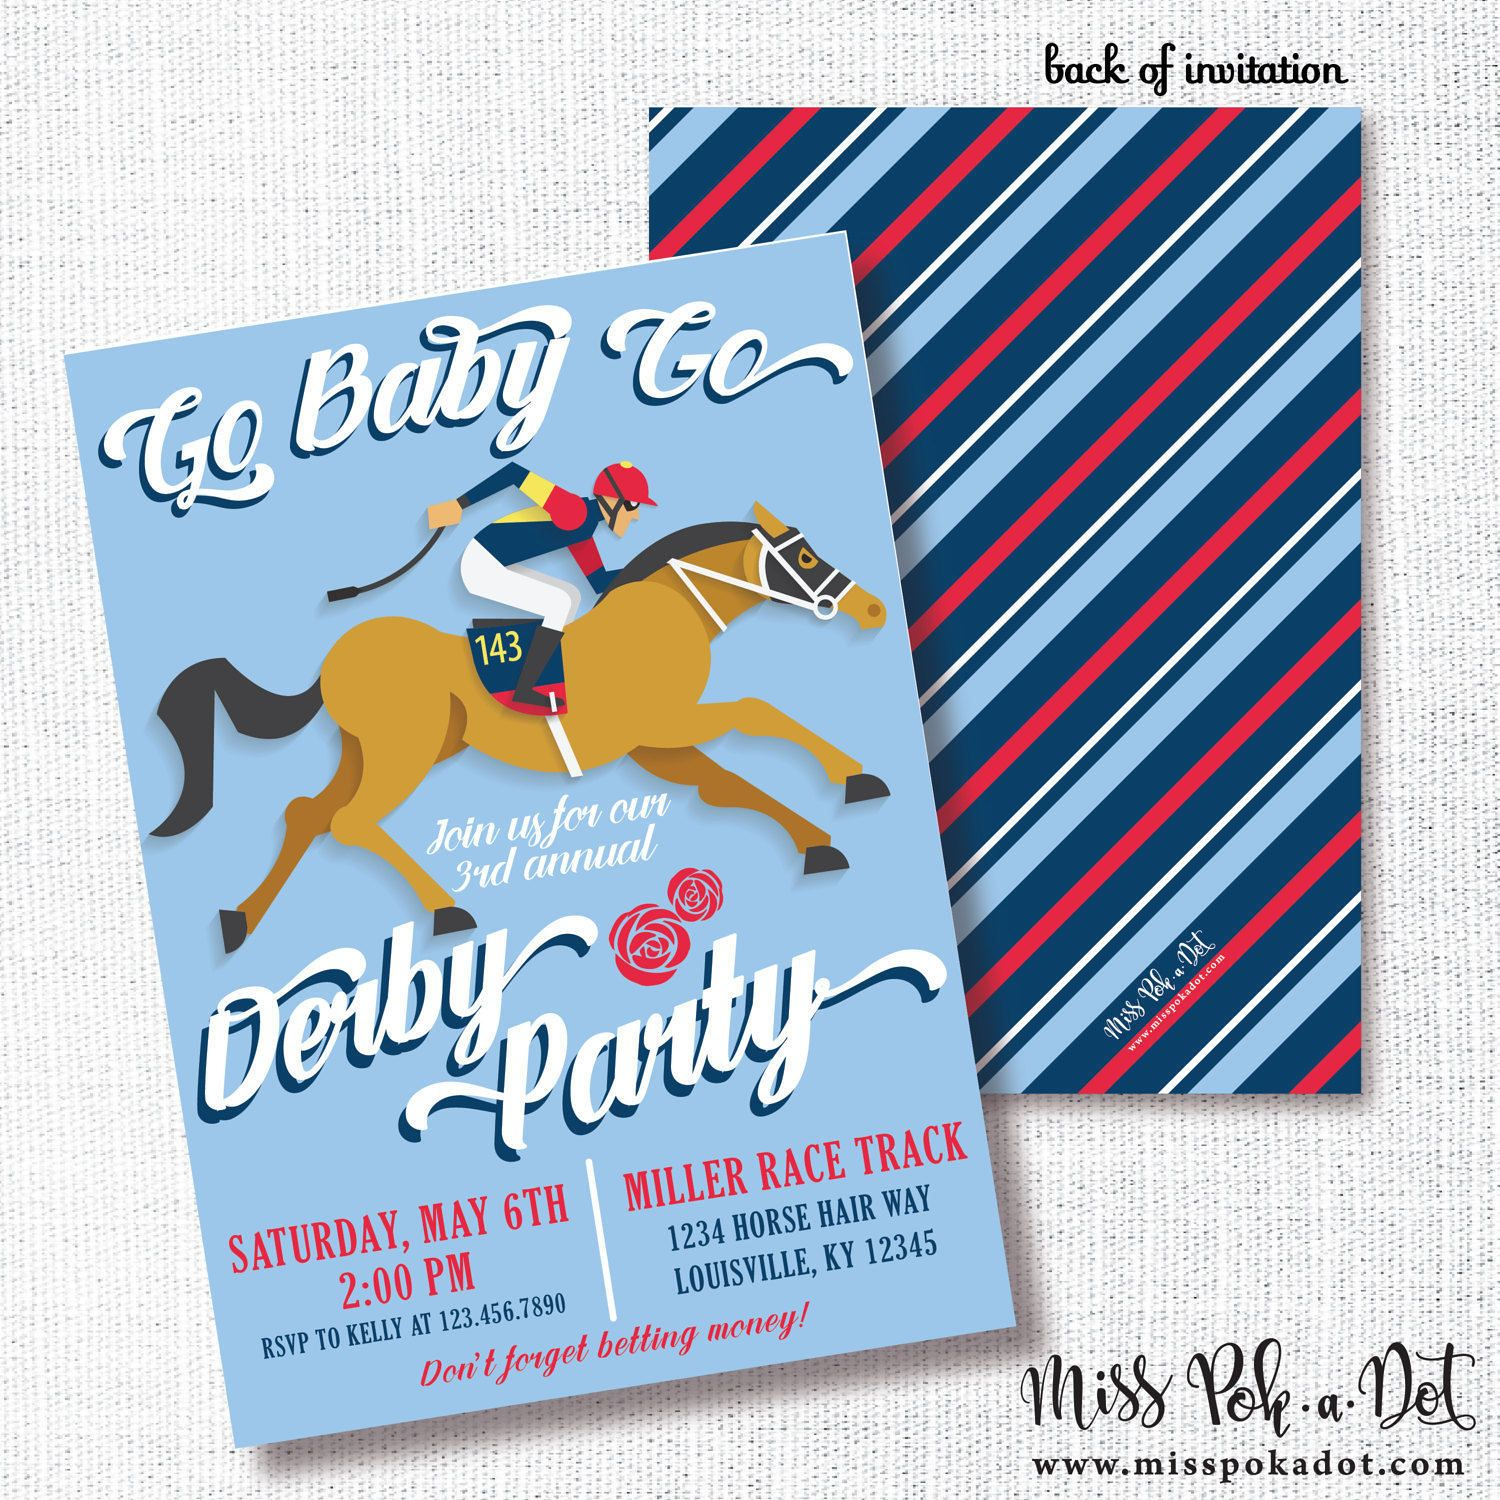 GO BABY GO Kentucky Derby party invitation horse racing party